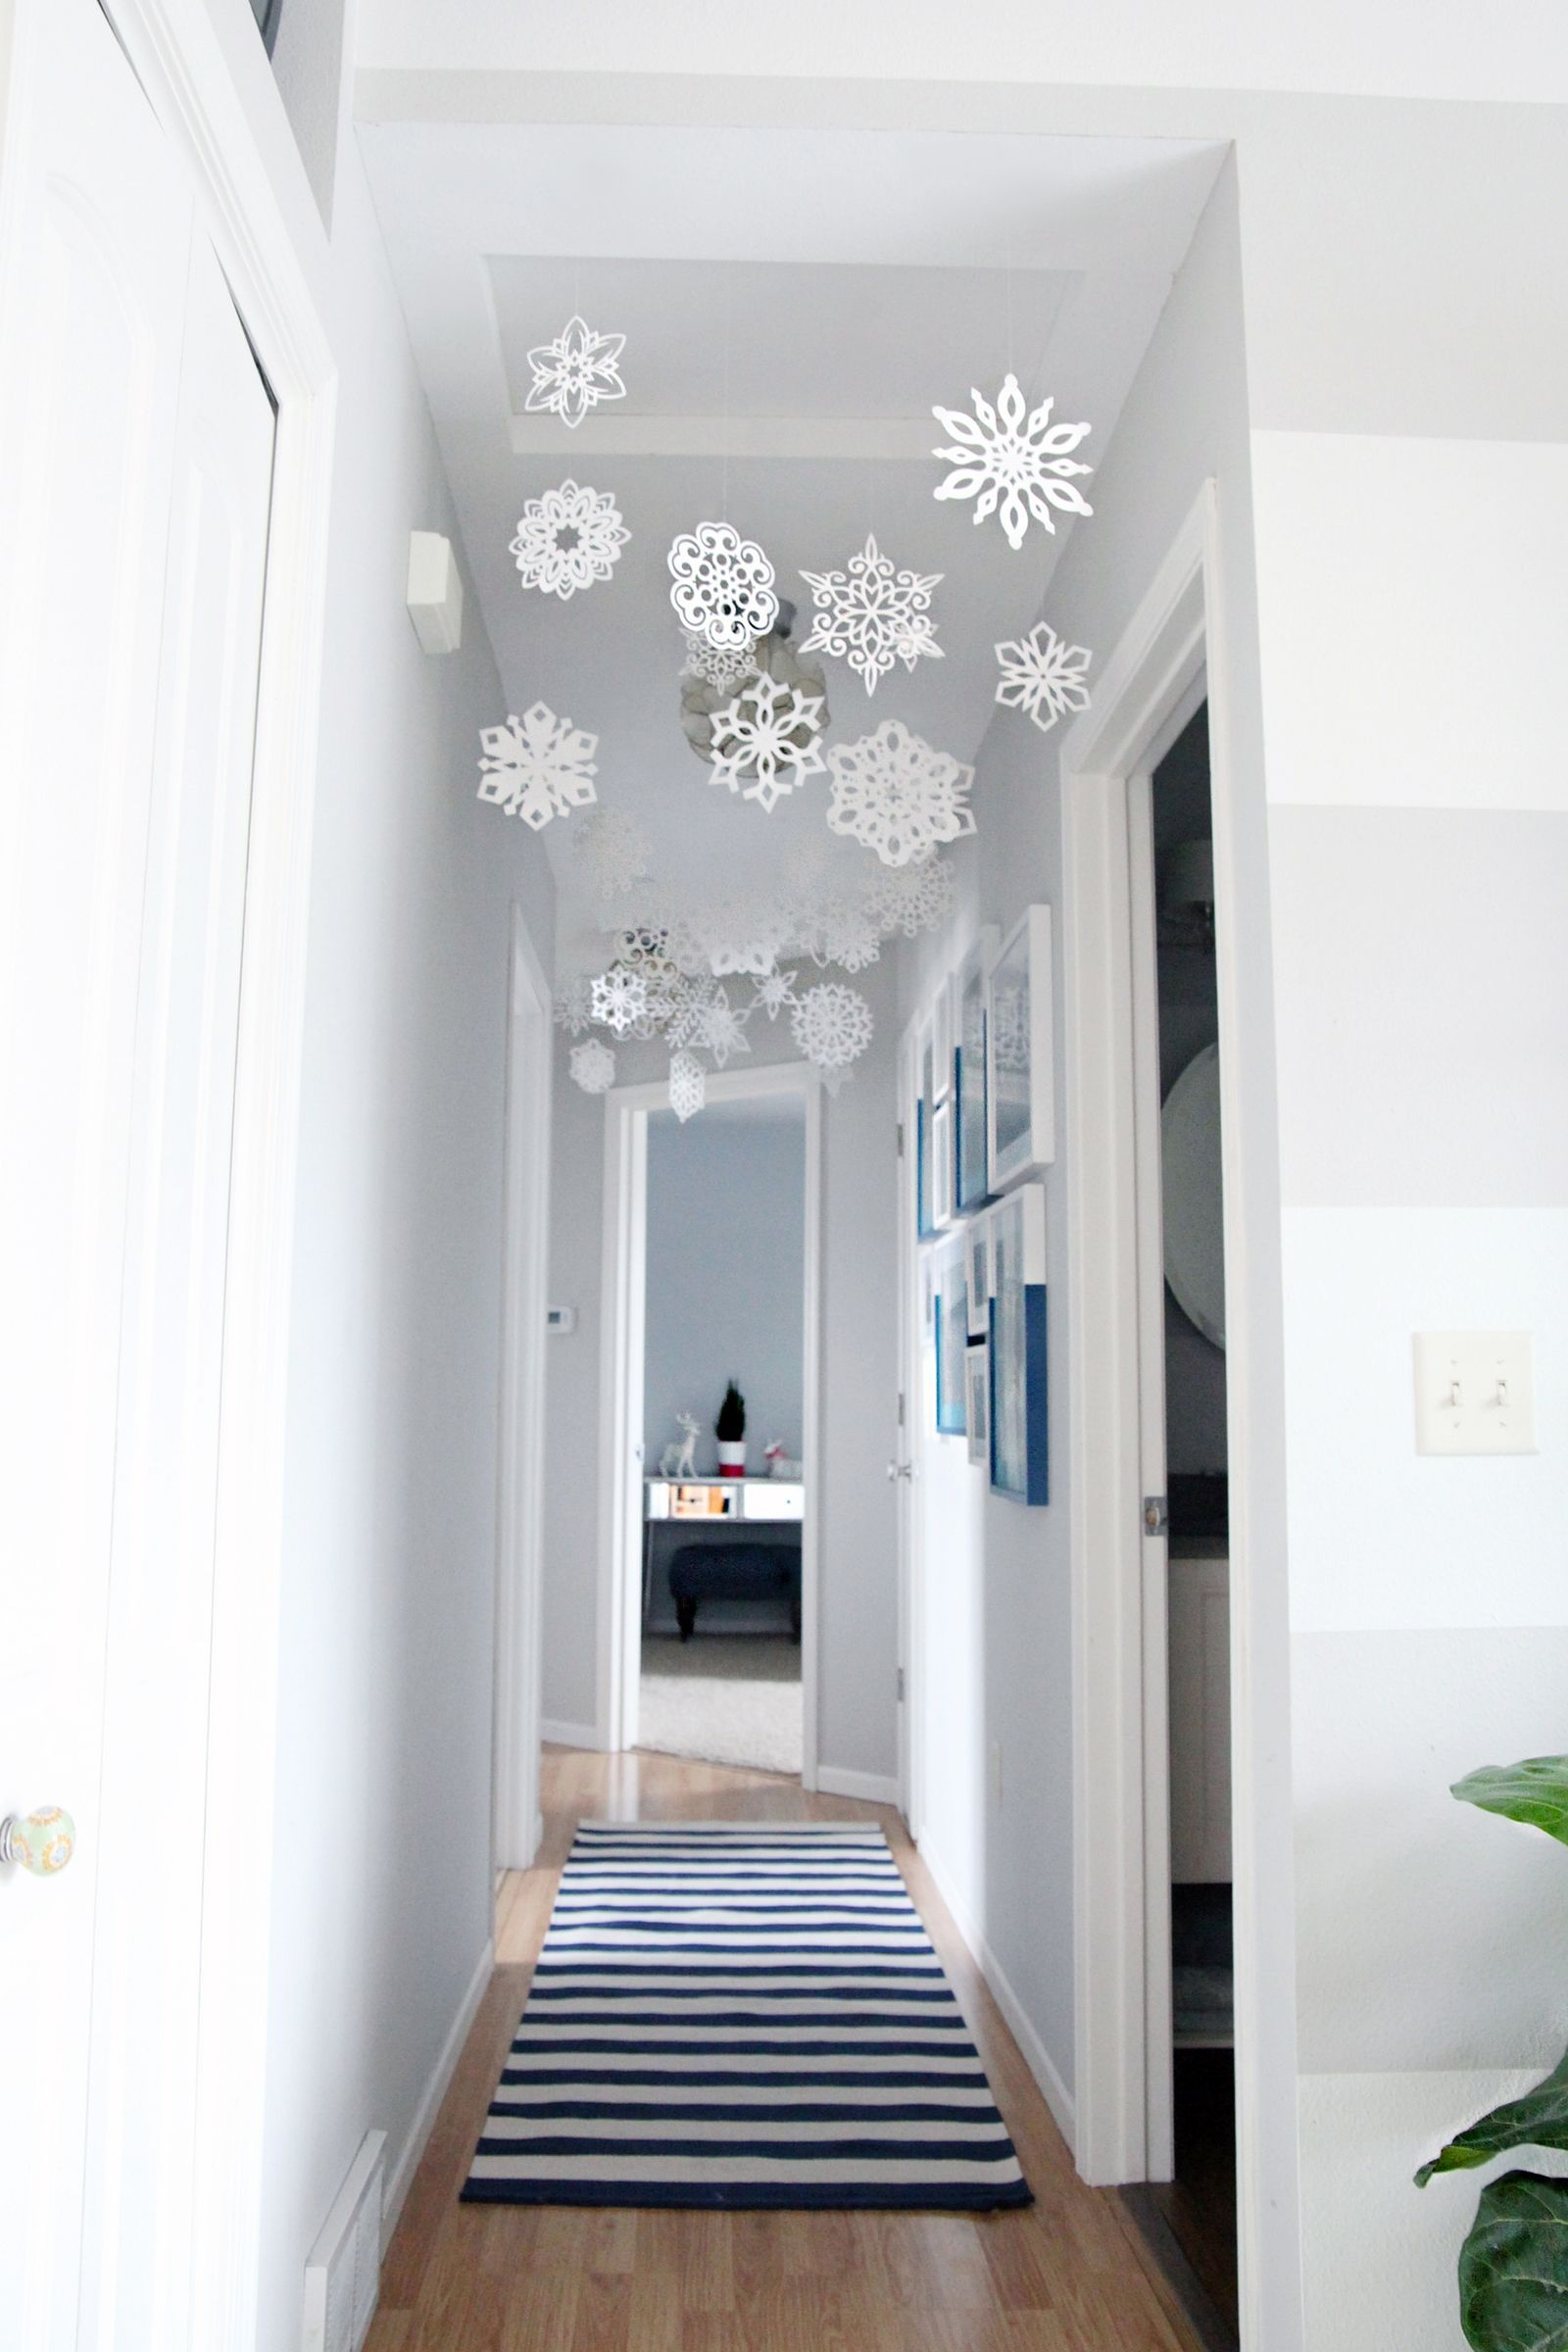 27 Brilliant Ways To Decorate Your Small Space For Christmas ...